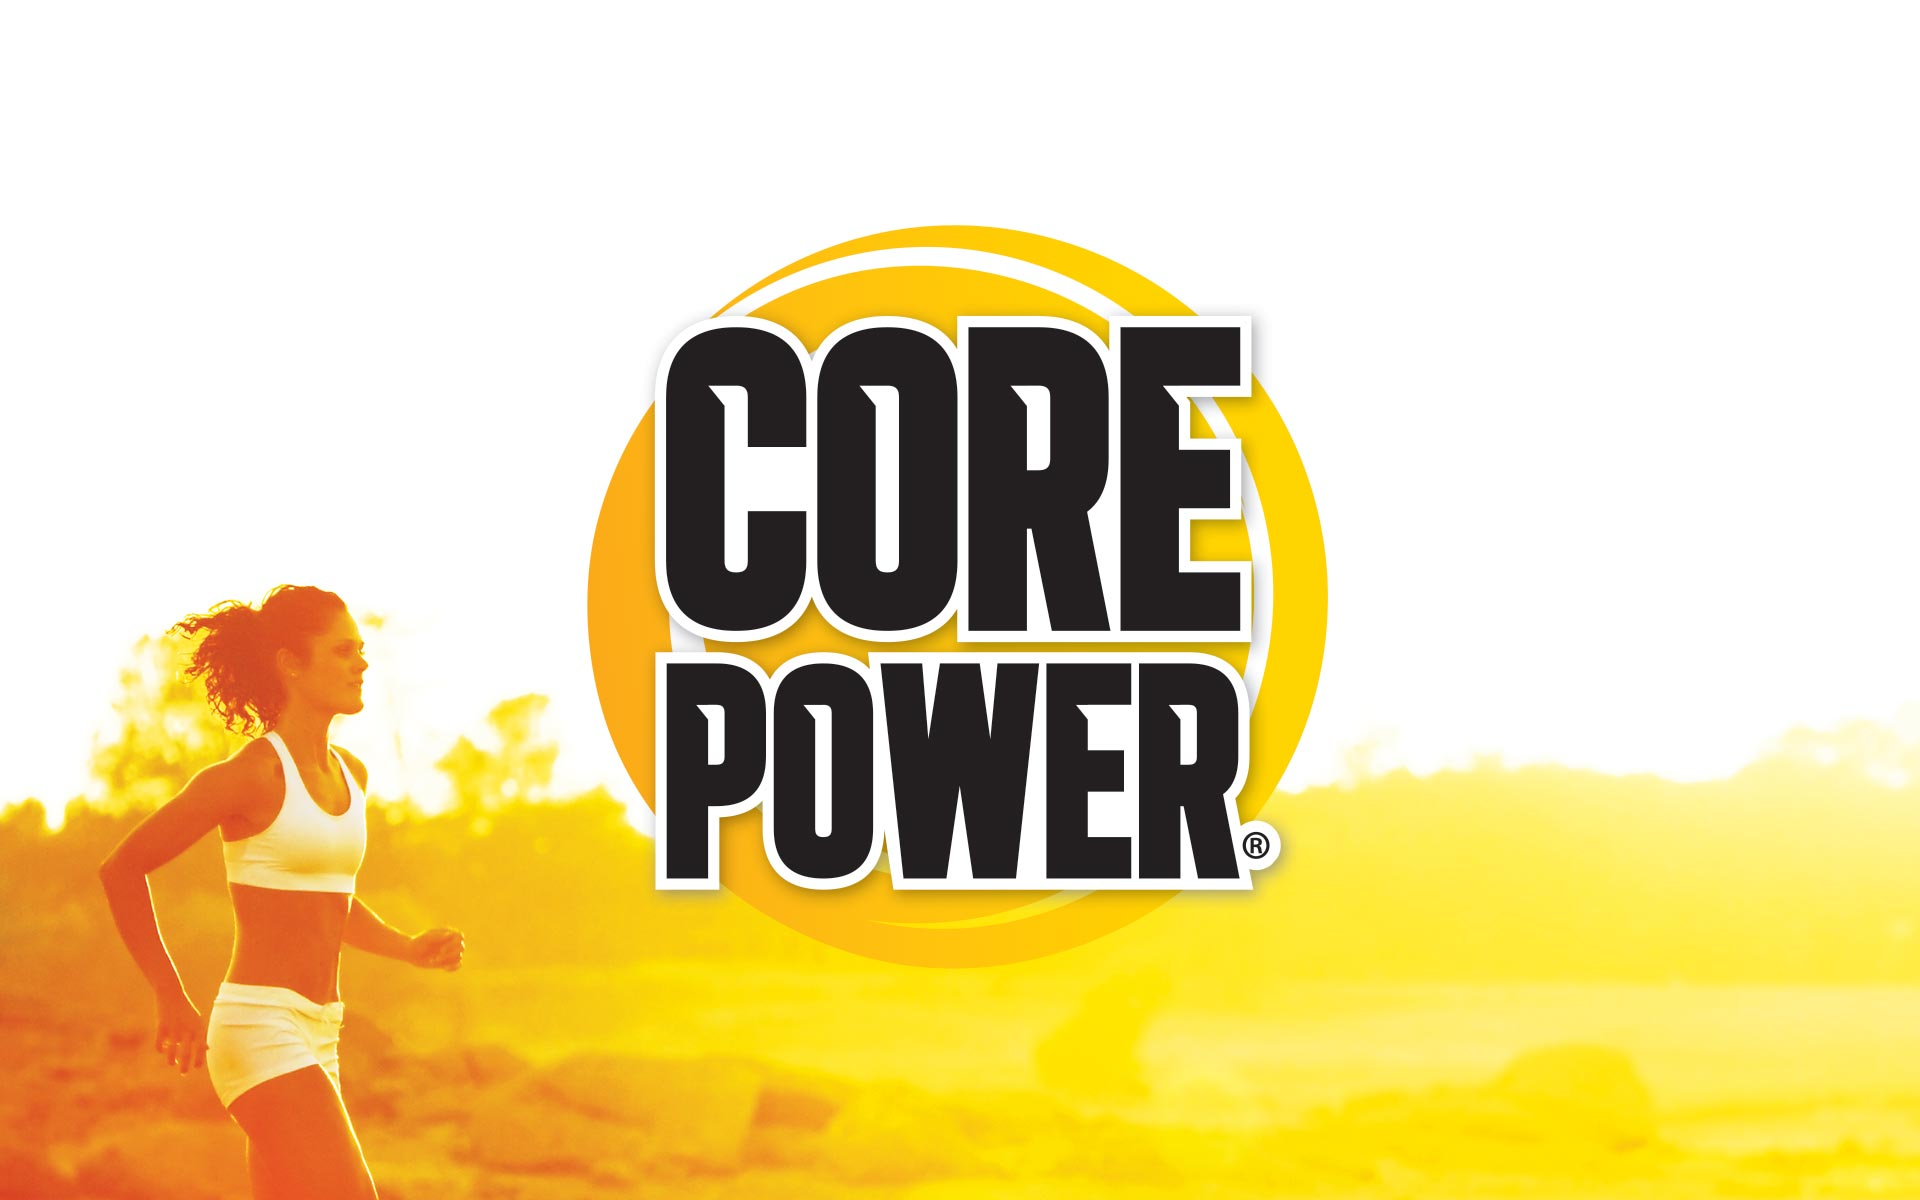 Core Power - Brand Identity